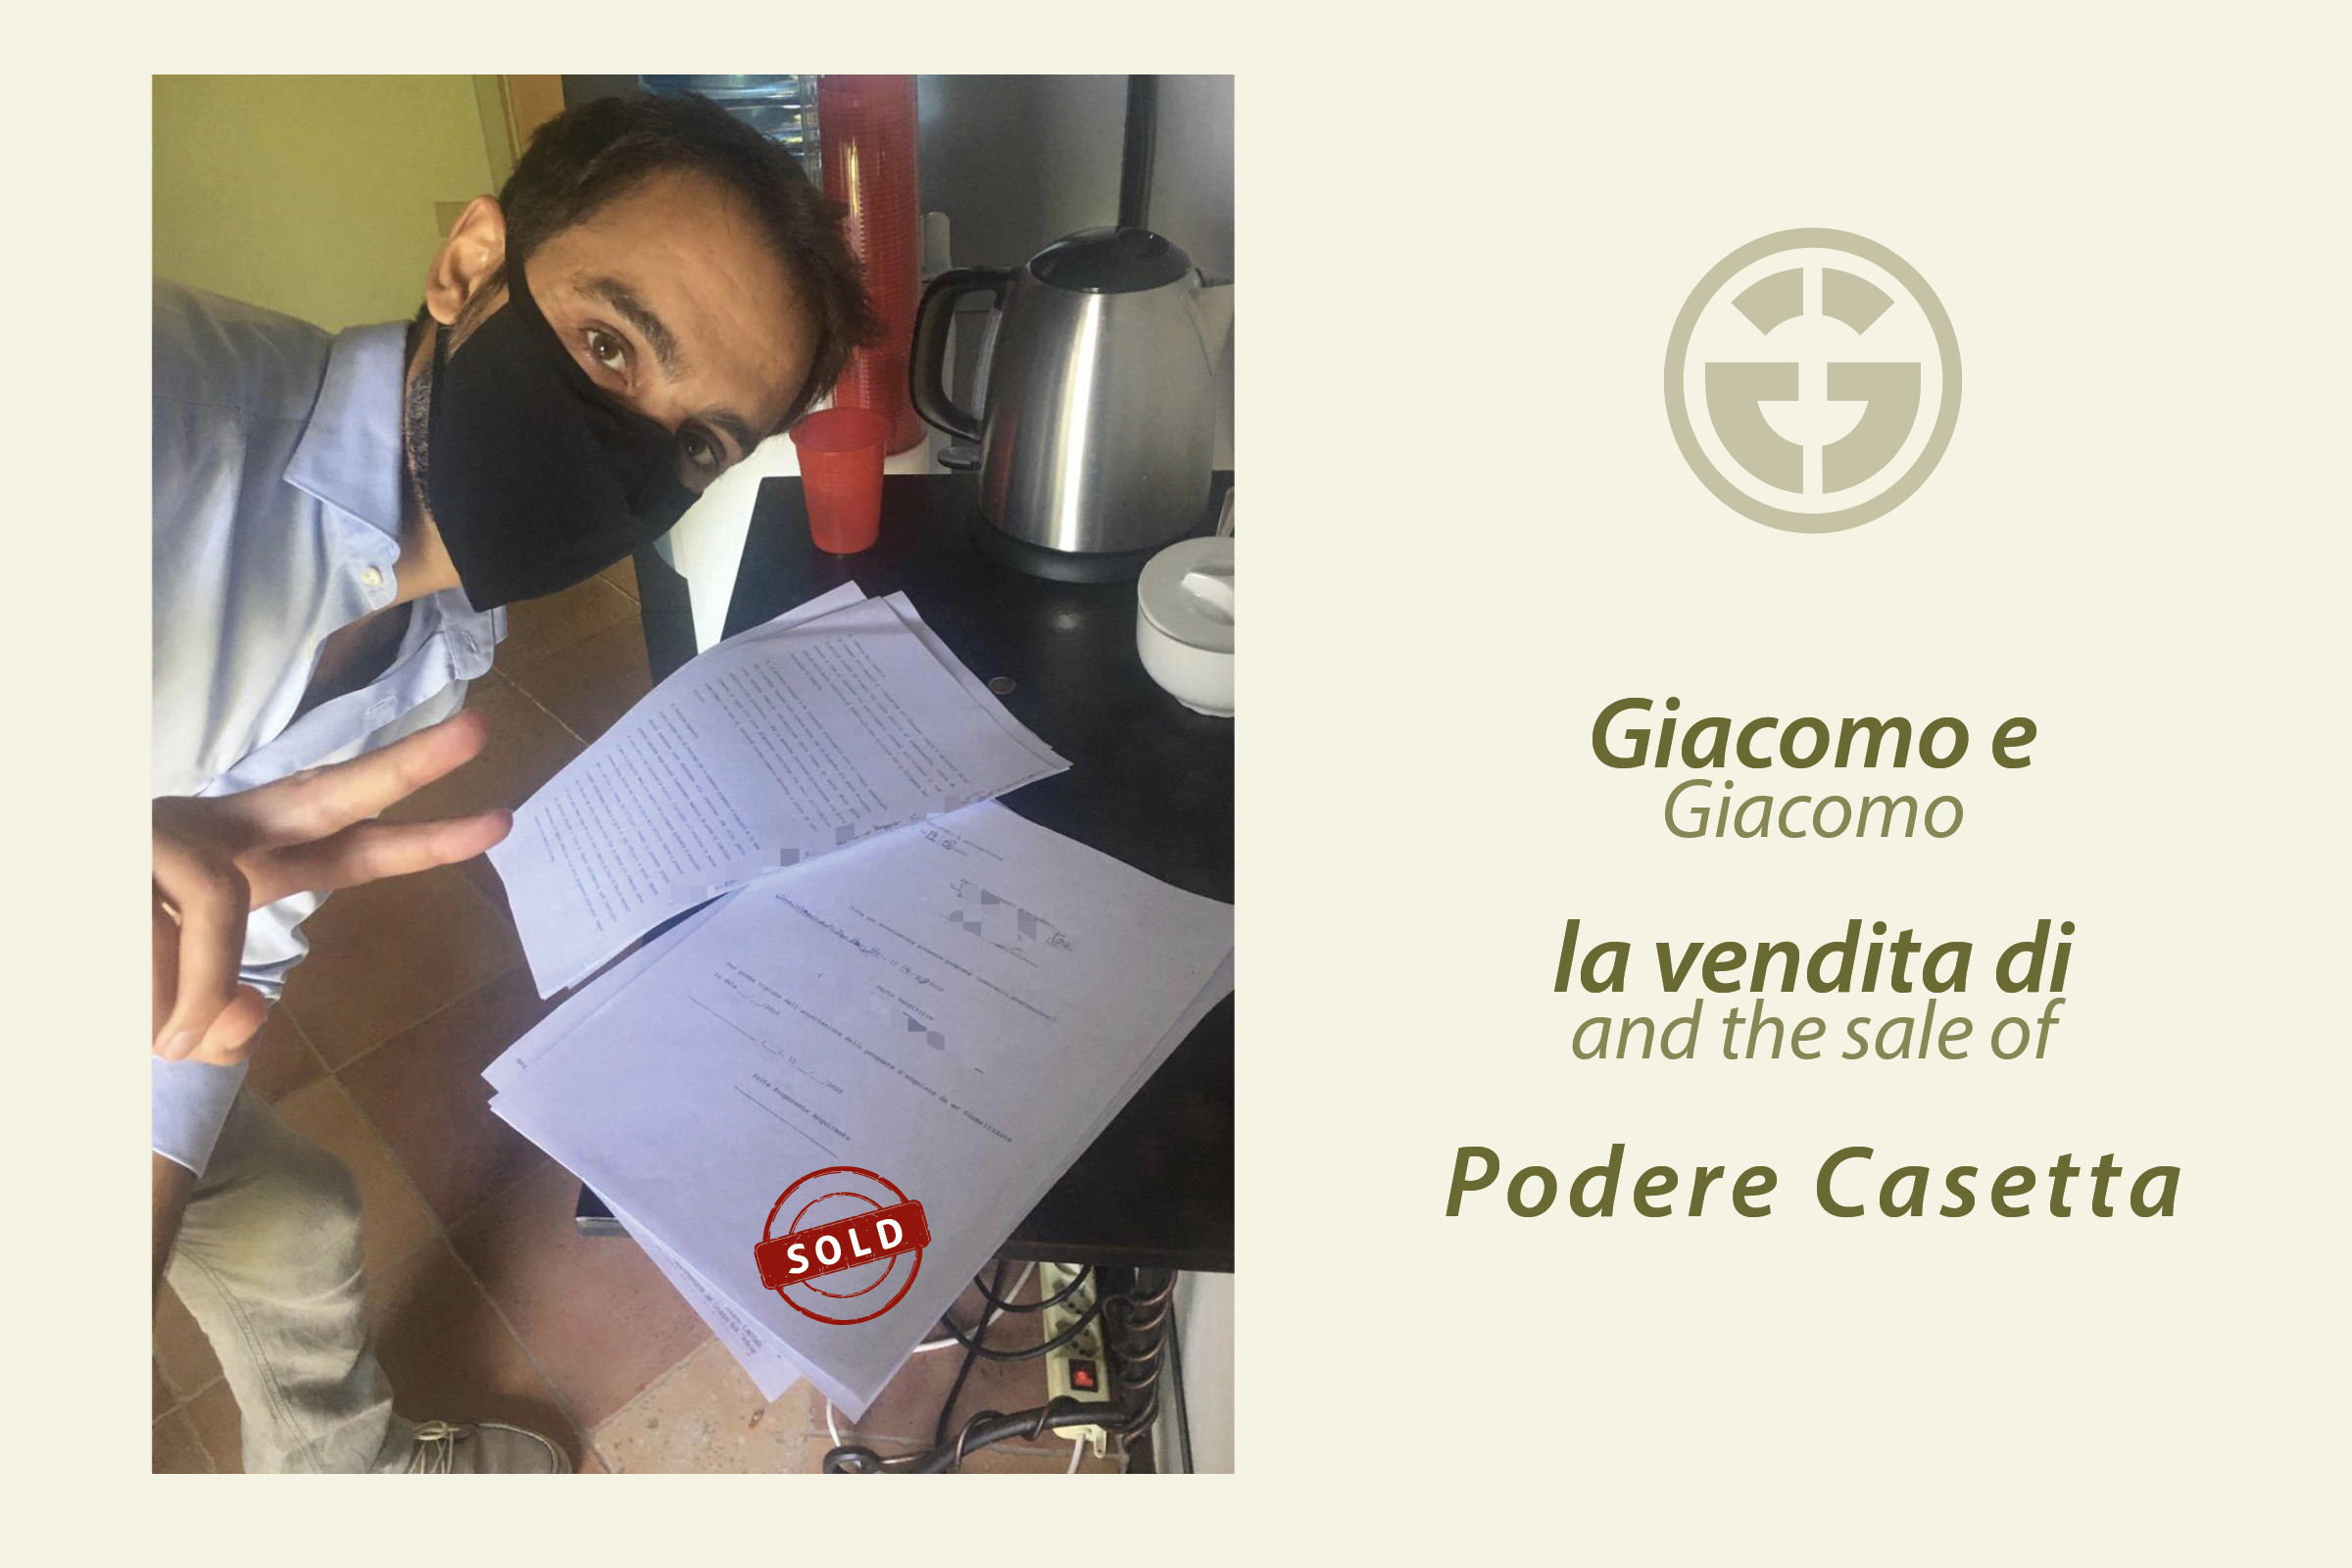 """Giacomo Buonavita: the sale of """"Podere Casetta"""" confirms the efficiency of the GE method"""